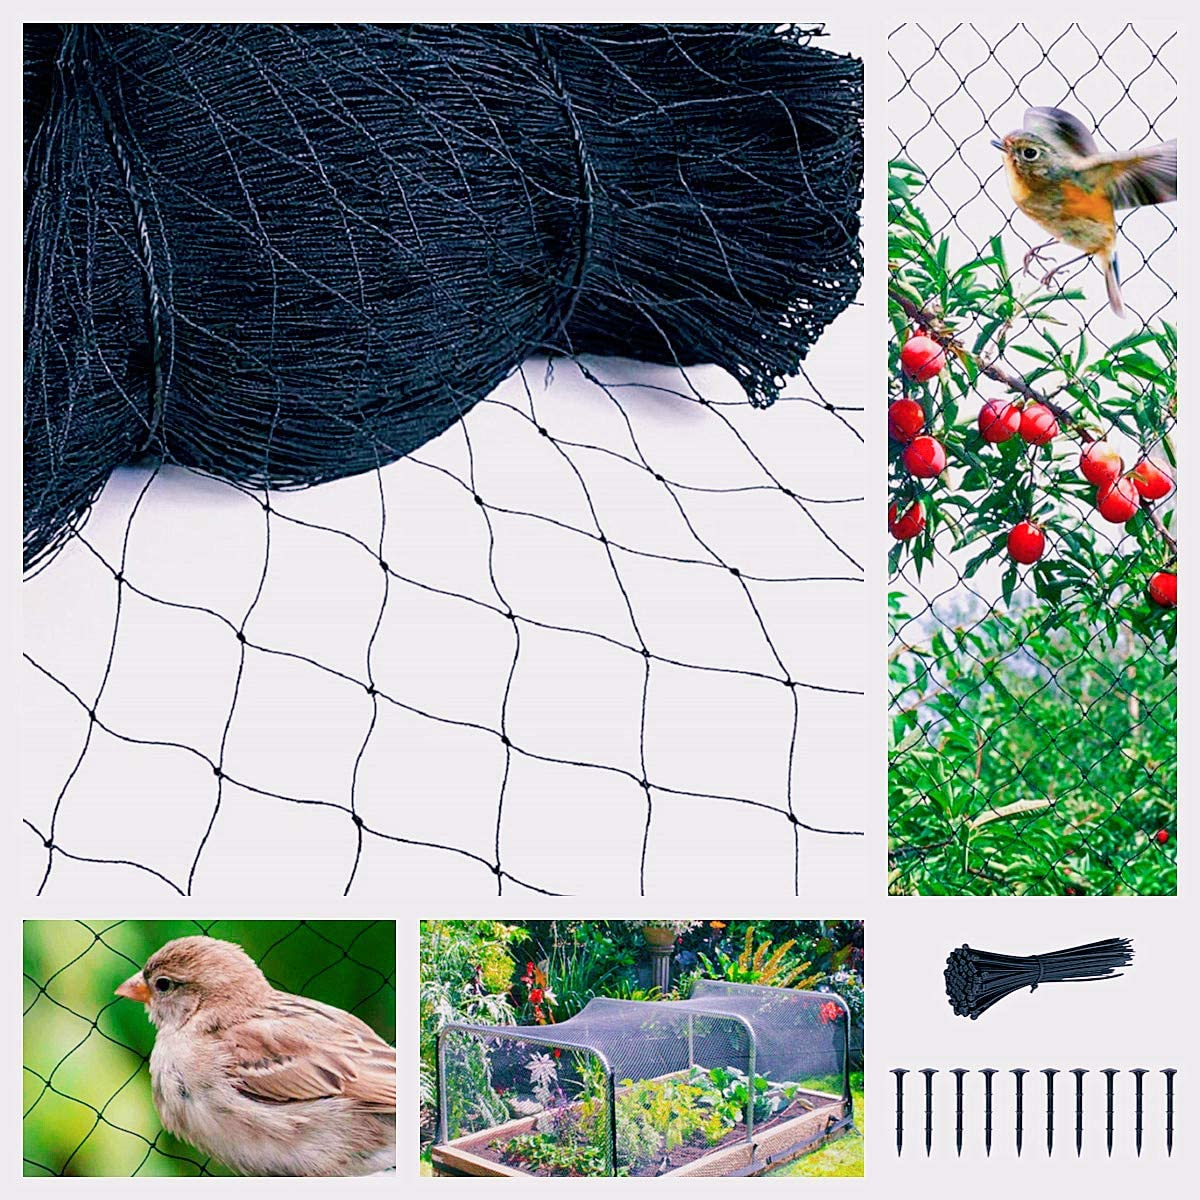 Garden Tailor Bird Netting, 25 x 50 feet Garden Net with 1 inch Square Mesh, Heavy Duty Durable Deer Fencing Protect Fruit Trees Plants and Vegetables, 40 Zip Ties 8 Long Sticks Included (Black)